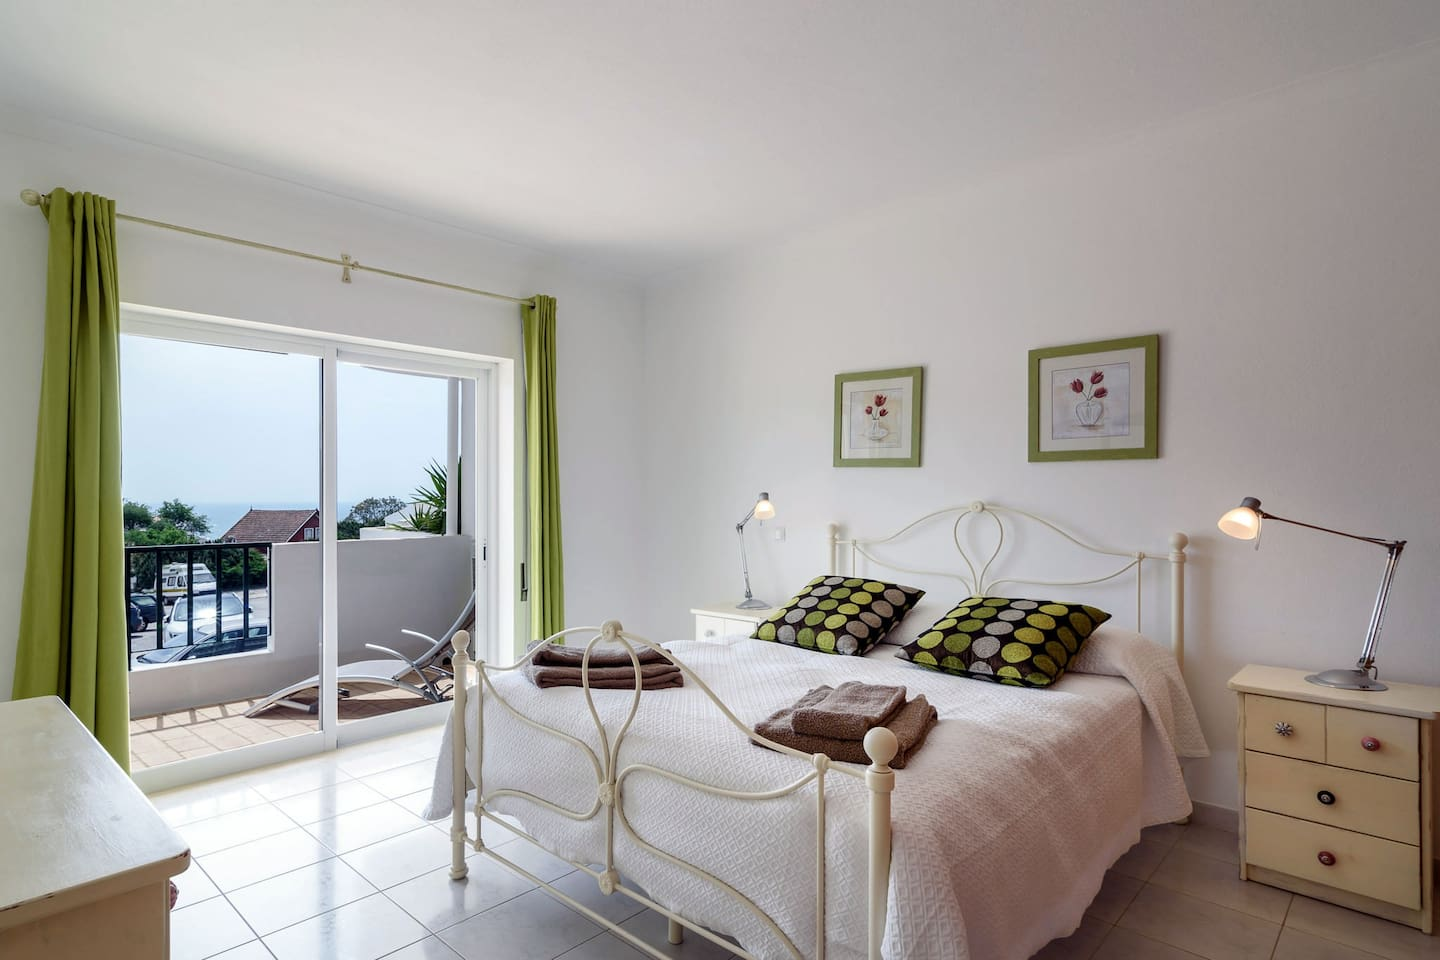 Main bedroom with access to the balcony and sea view